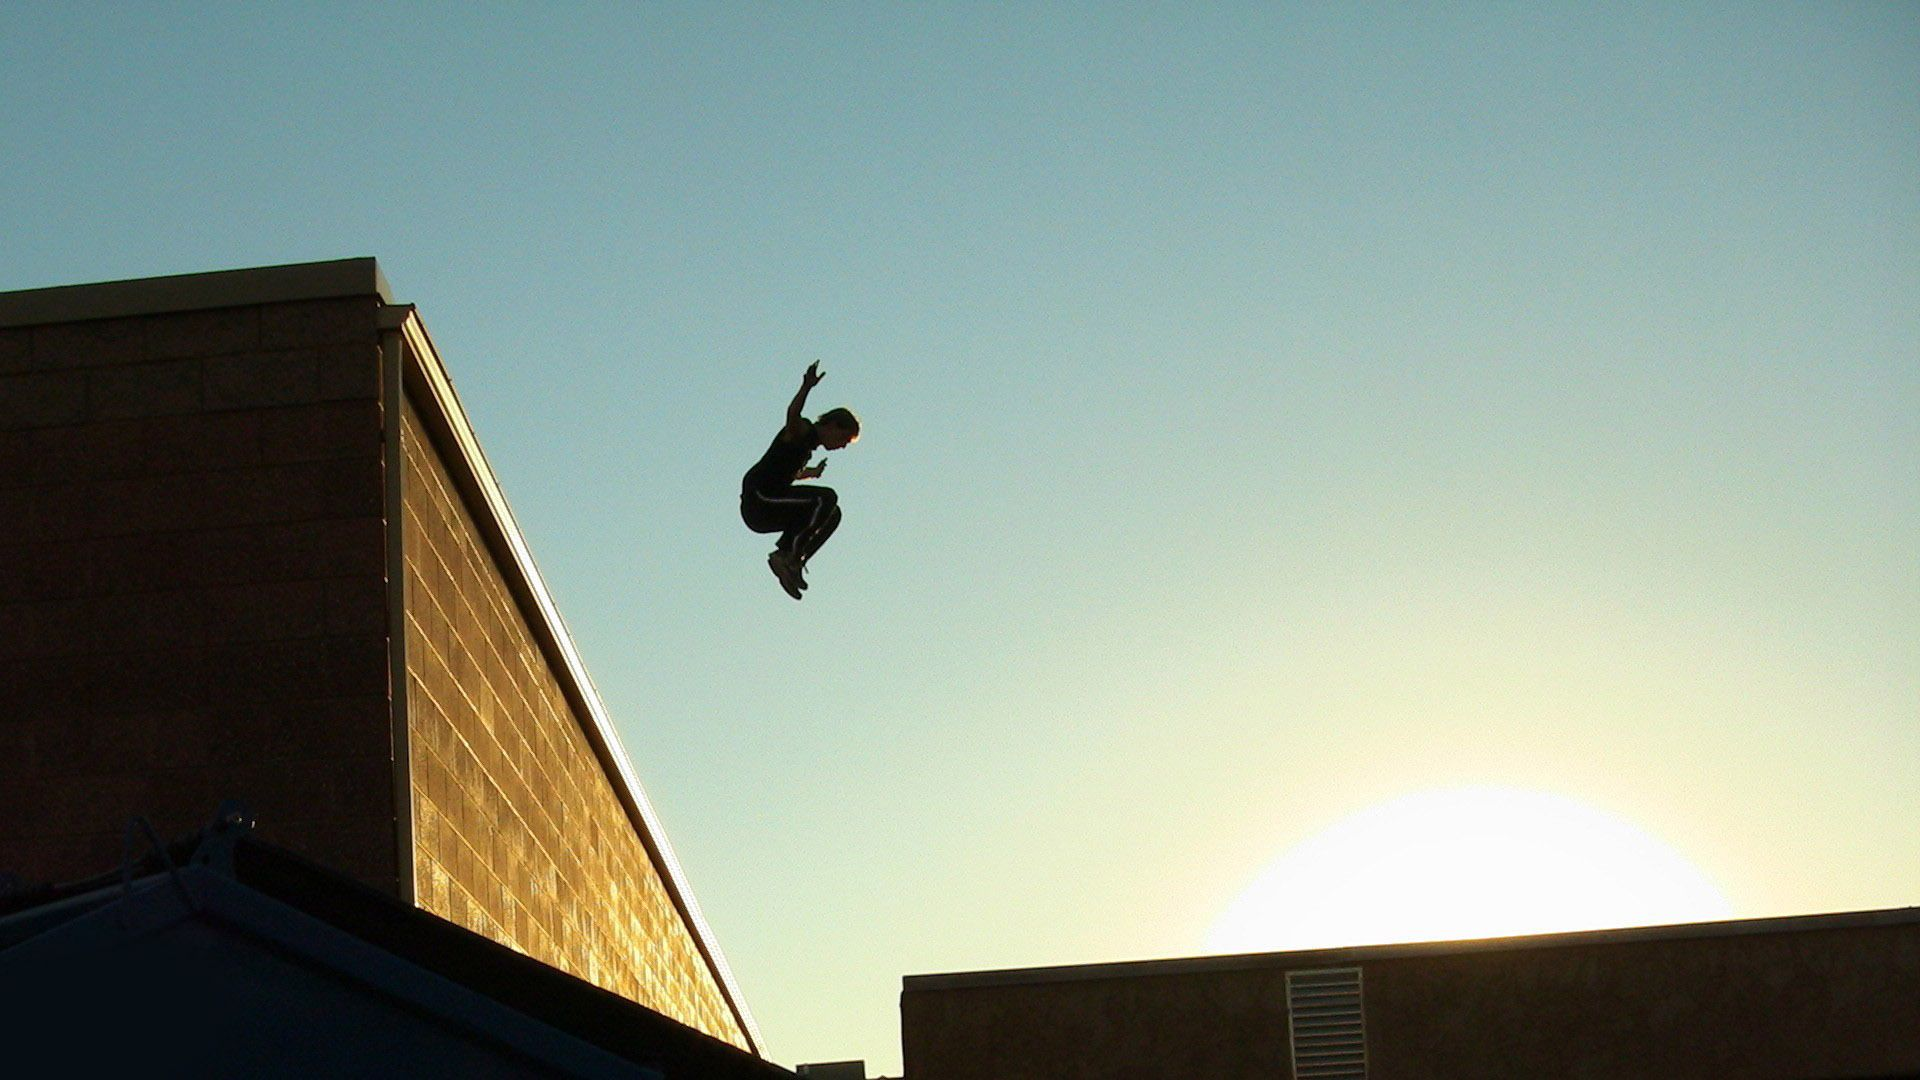 Parkour-HD-Desktop-for-Widescreen-wallpaper-wpc5807954